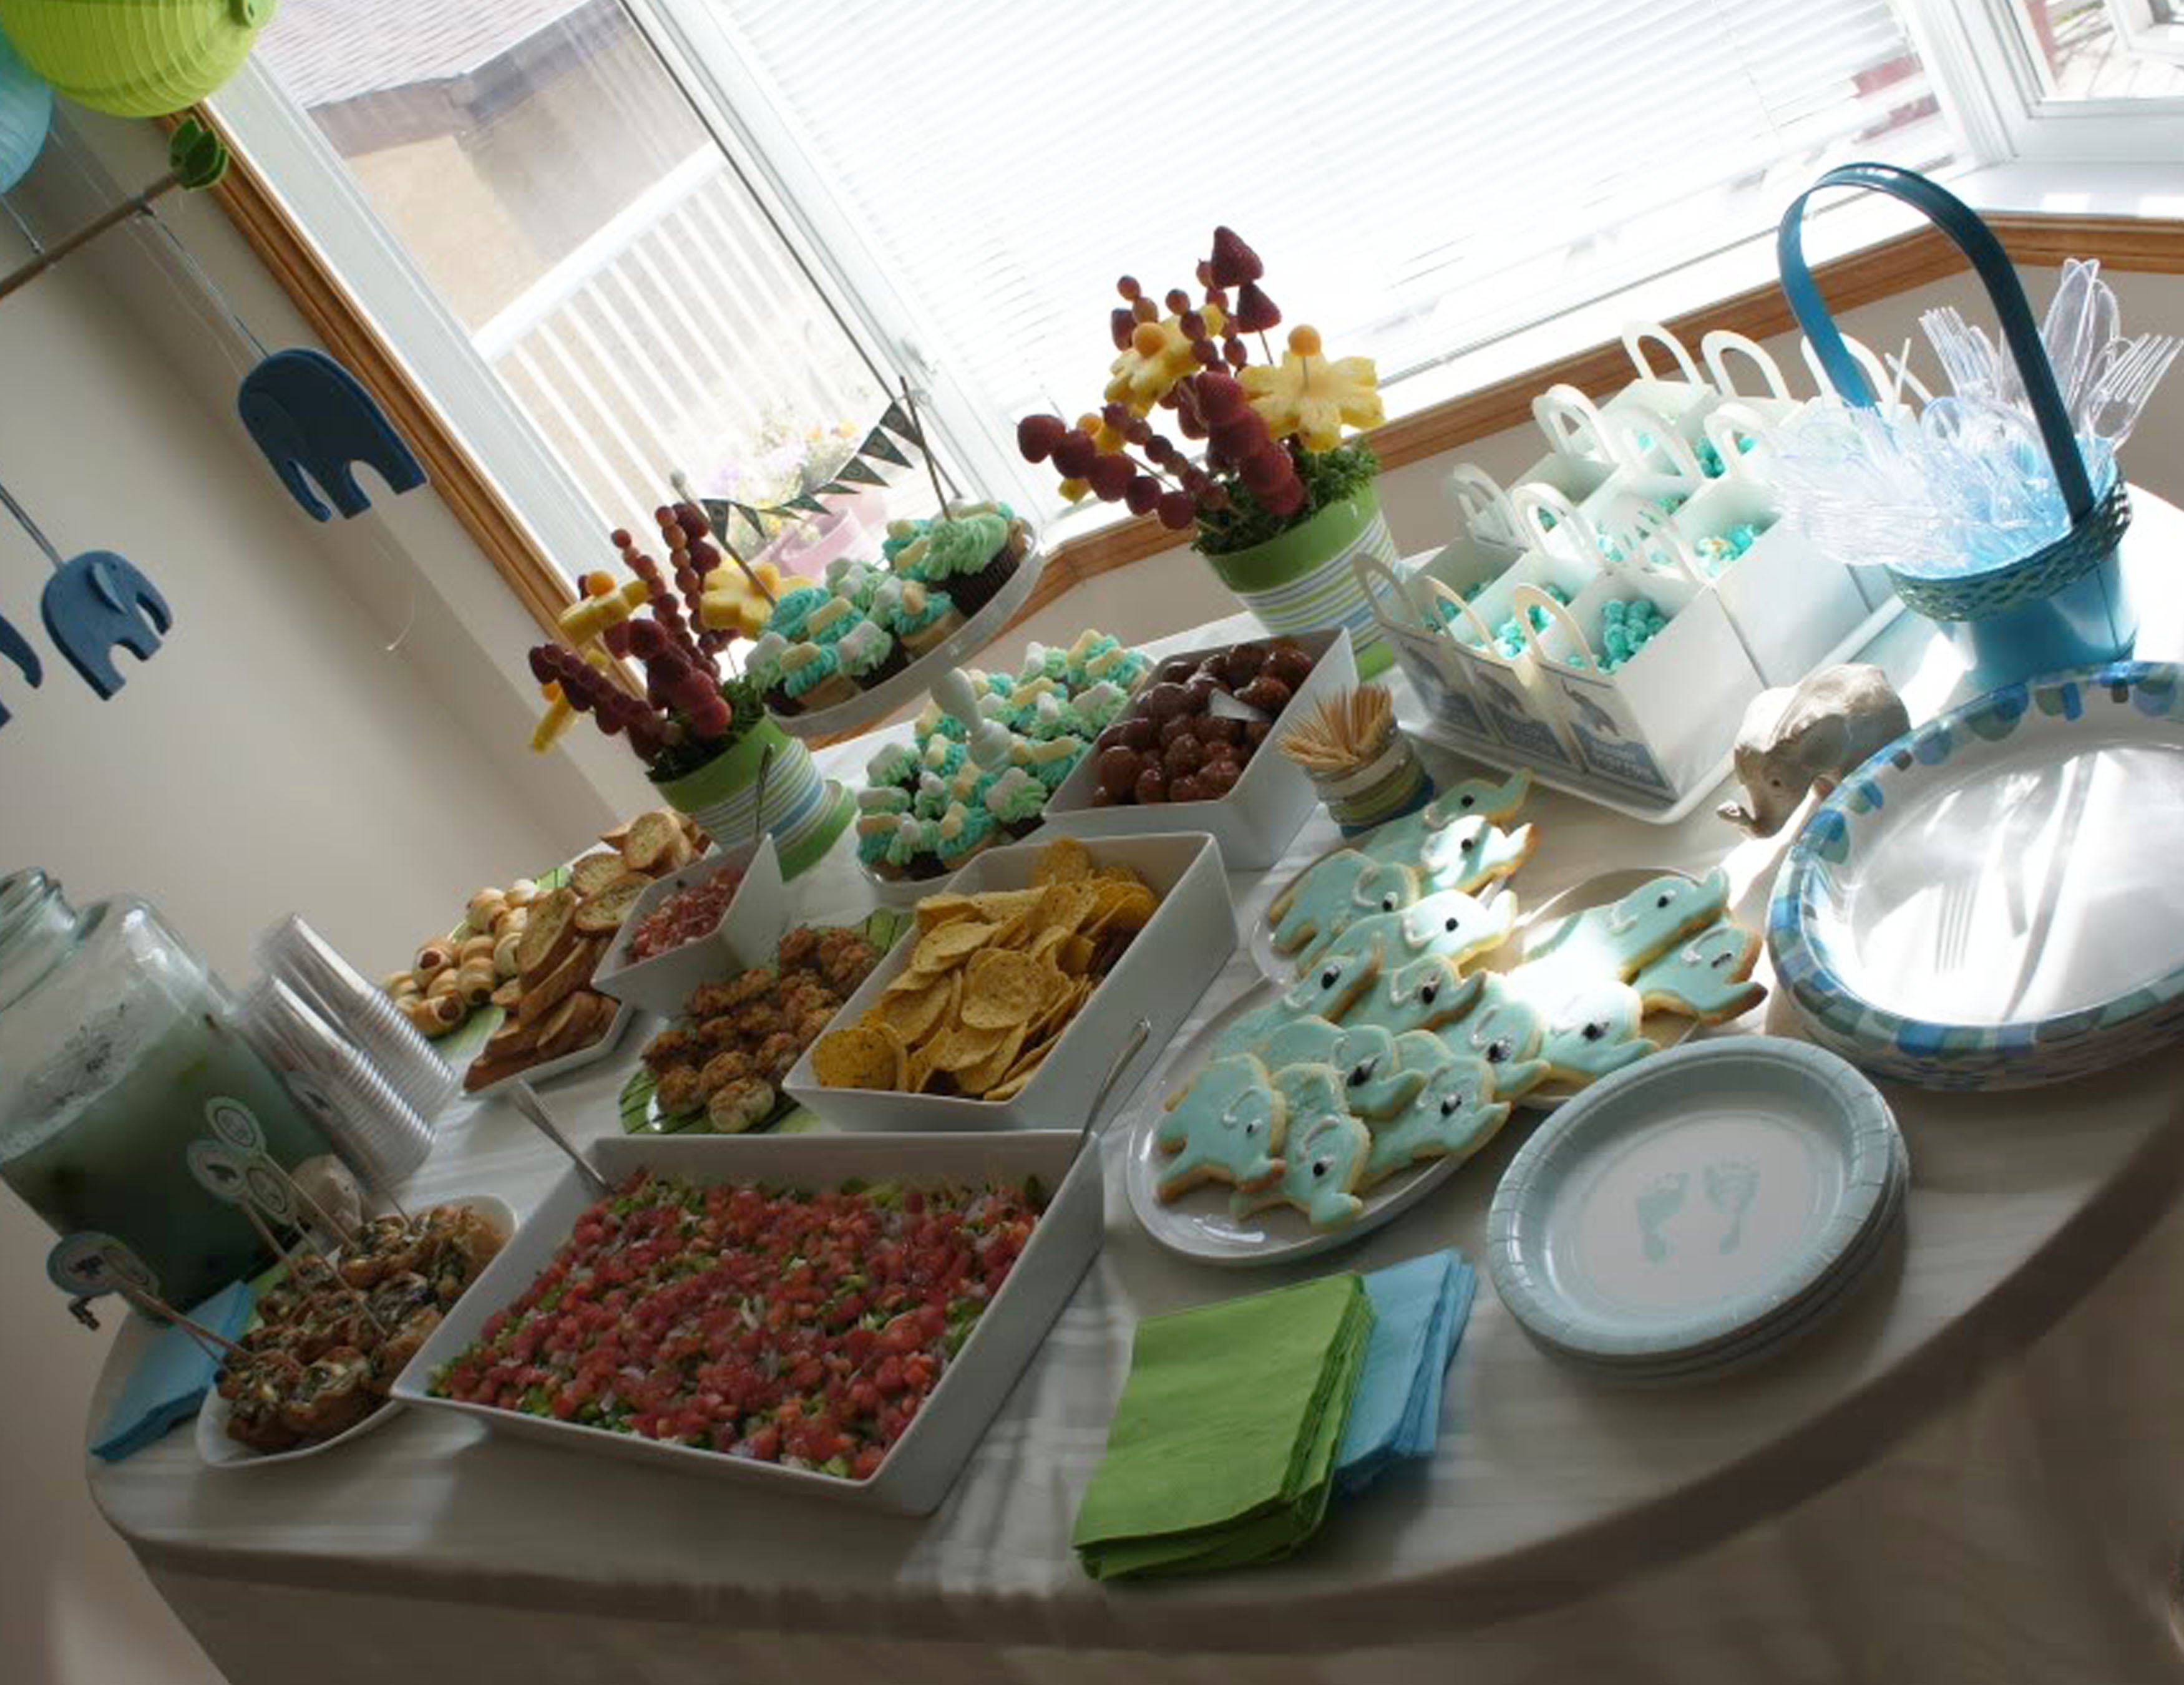 10 Perfect Baby Shower Food Ideas Pinterest baby hippo baby shower theme finger food baby shower foods ideas 2021